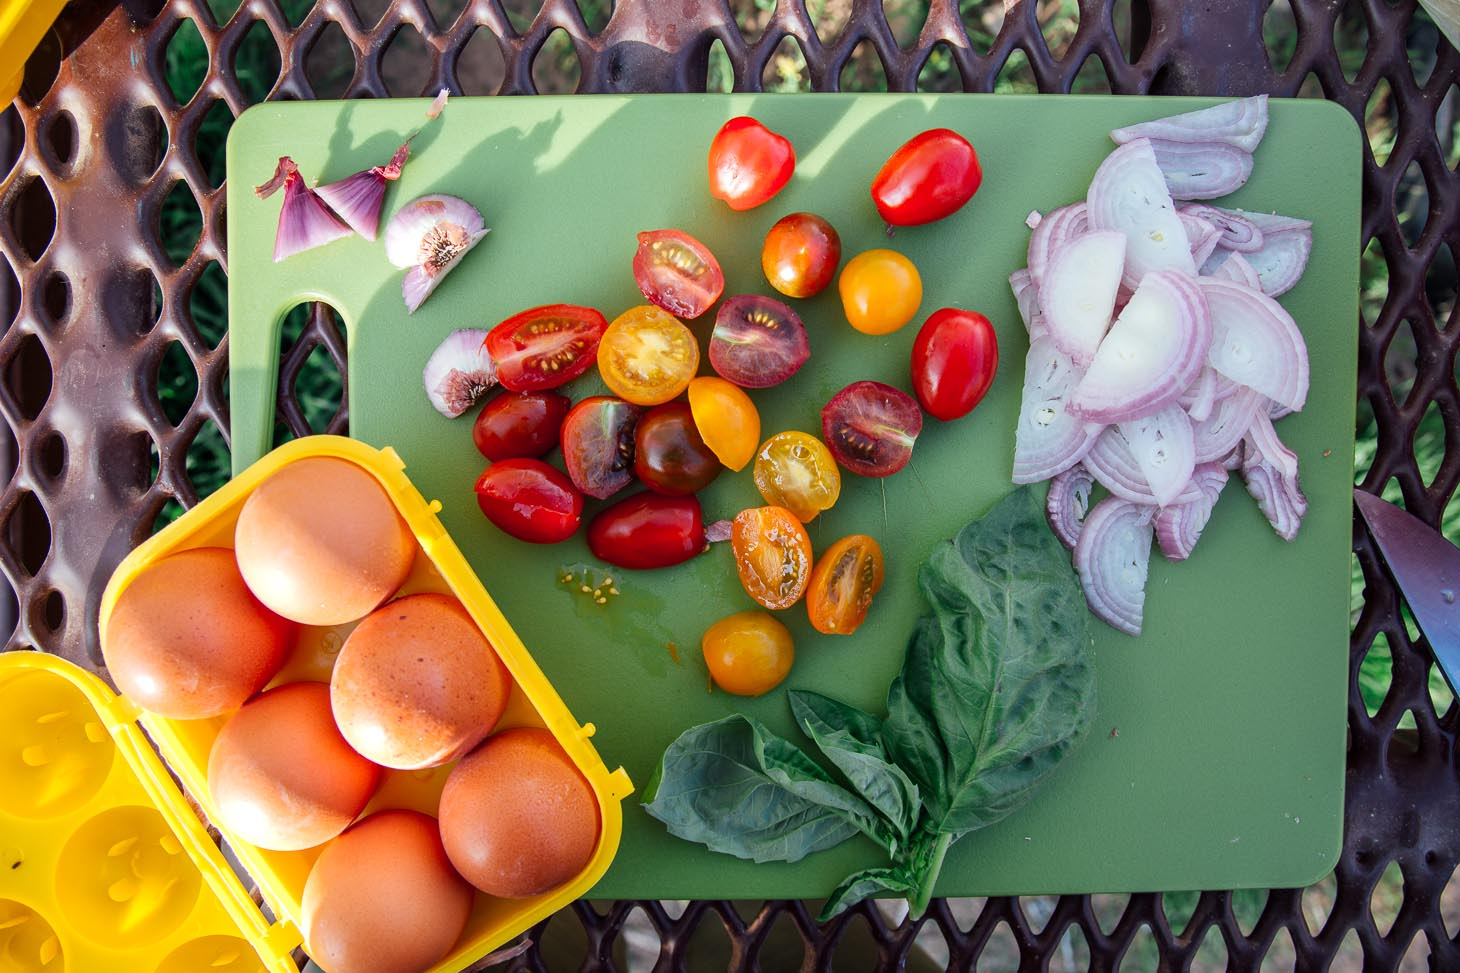 Ingredients for frittata: eggs, tomatoes, shallots, garlic, basil laid out on a cutting board.